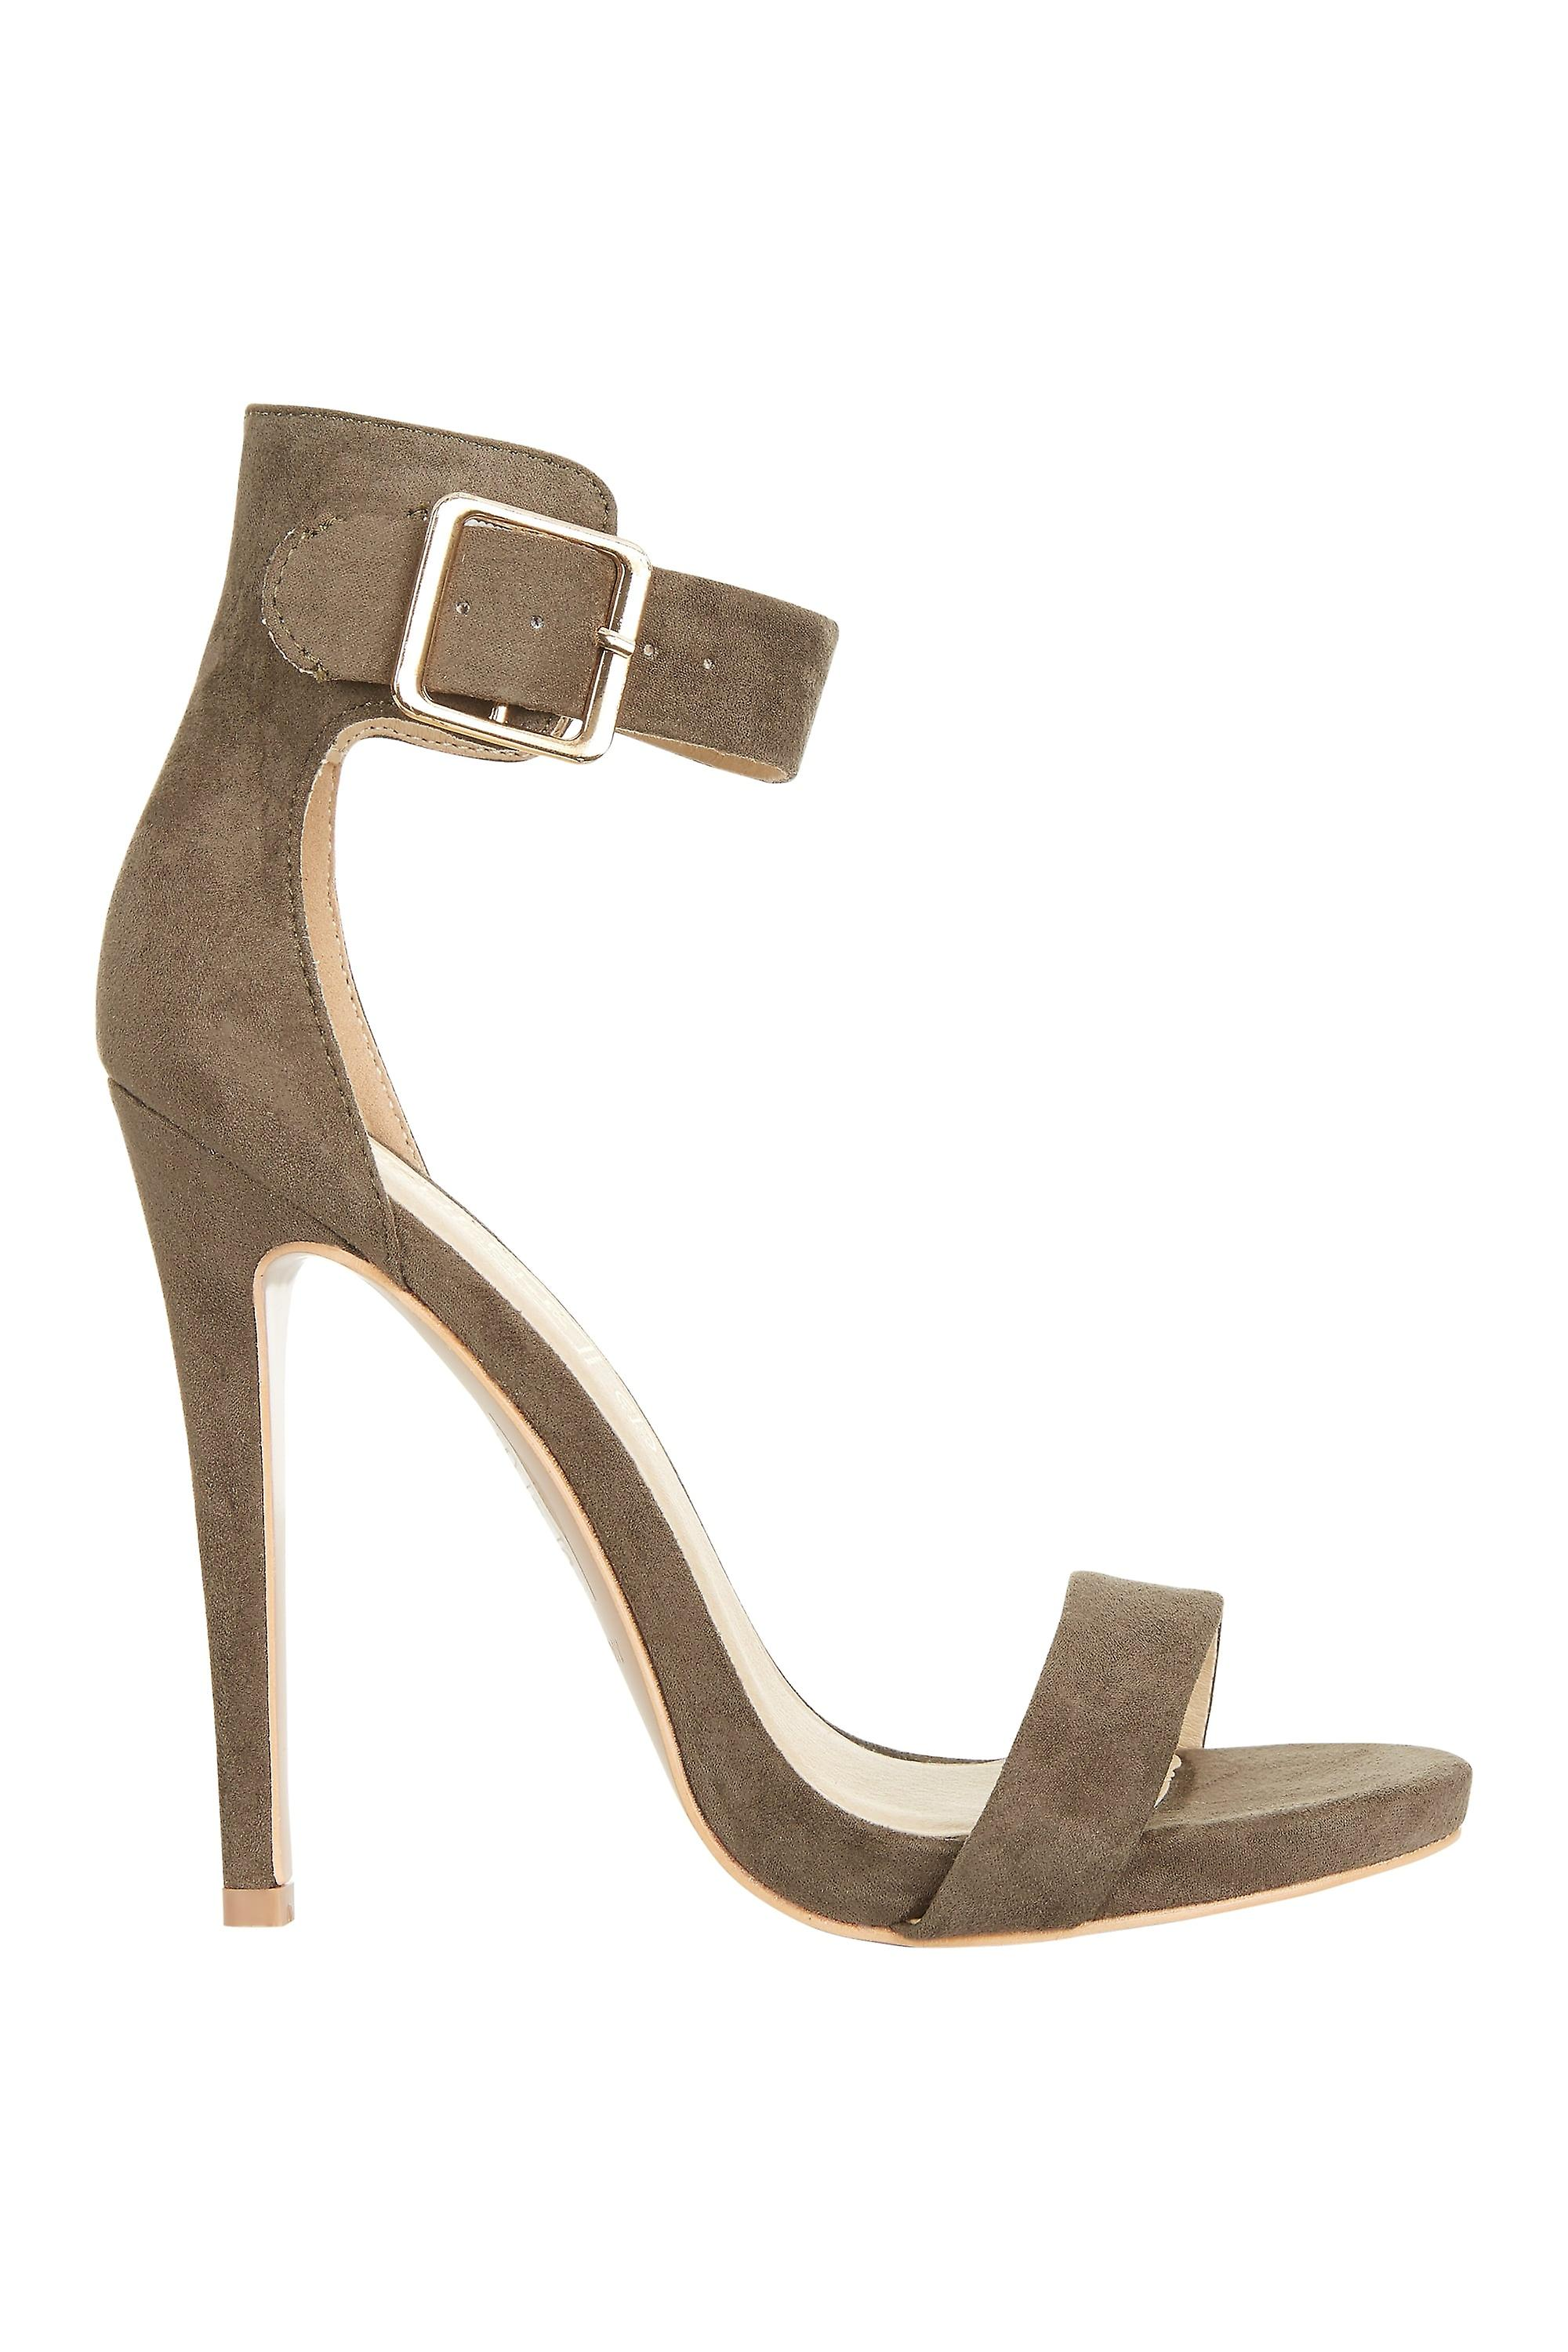 Truffle With High Heeled Suede Sandal Detail Collection Buckle zwazO